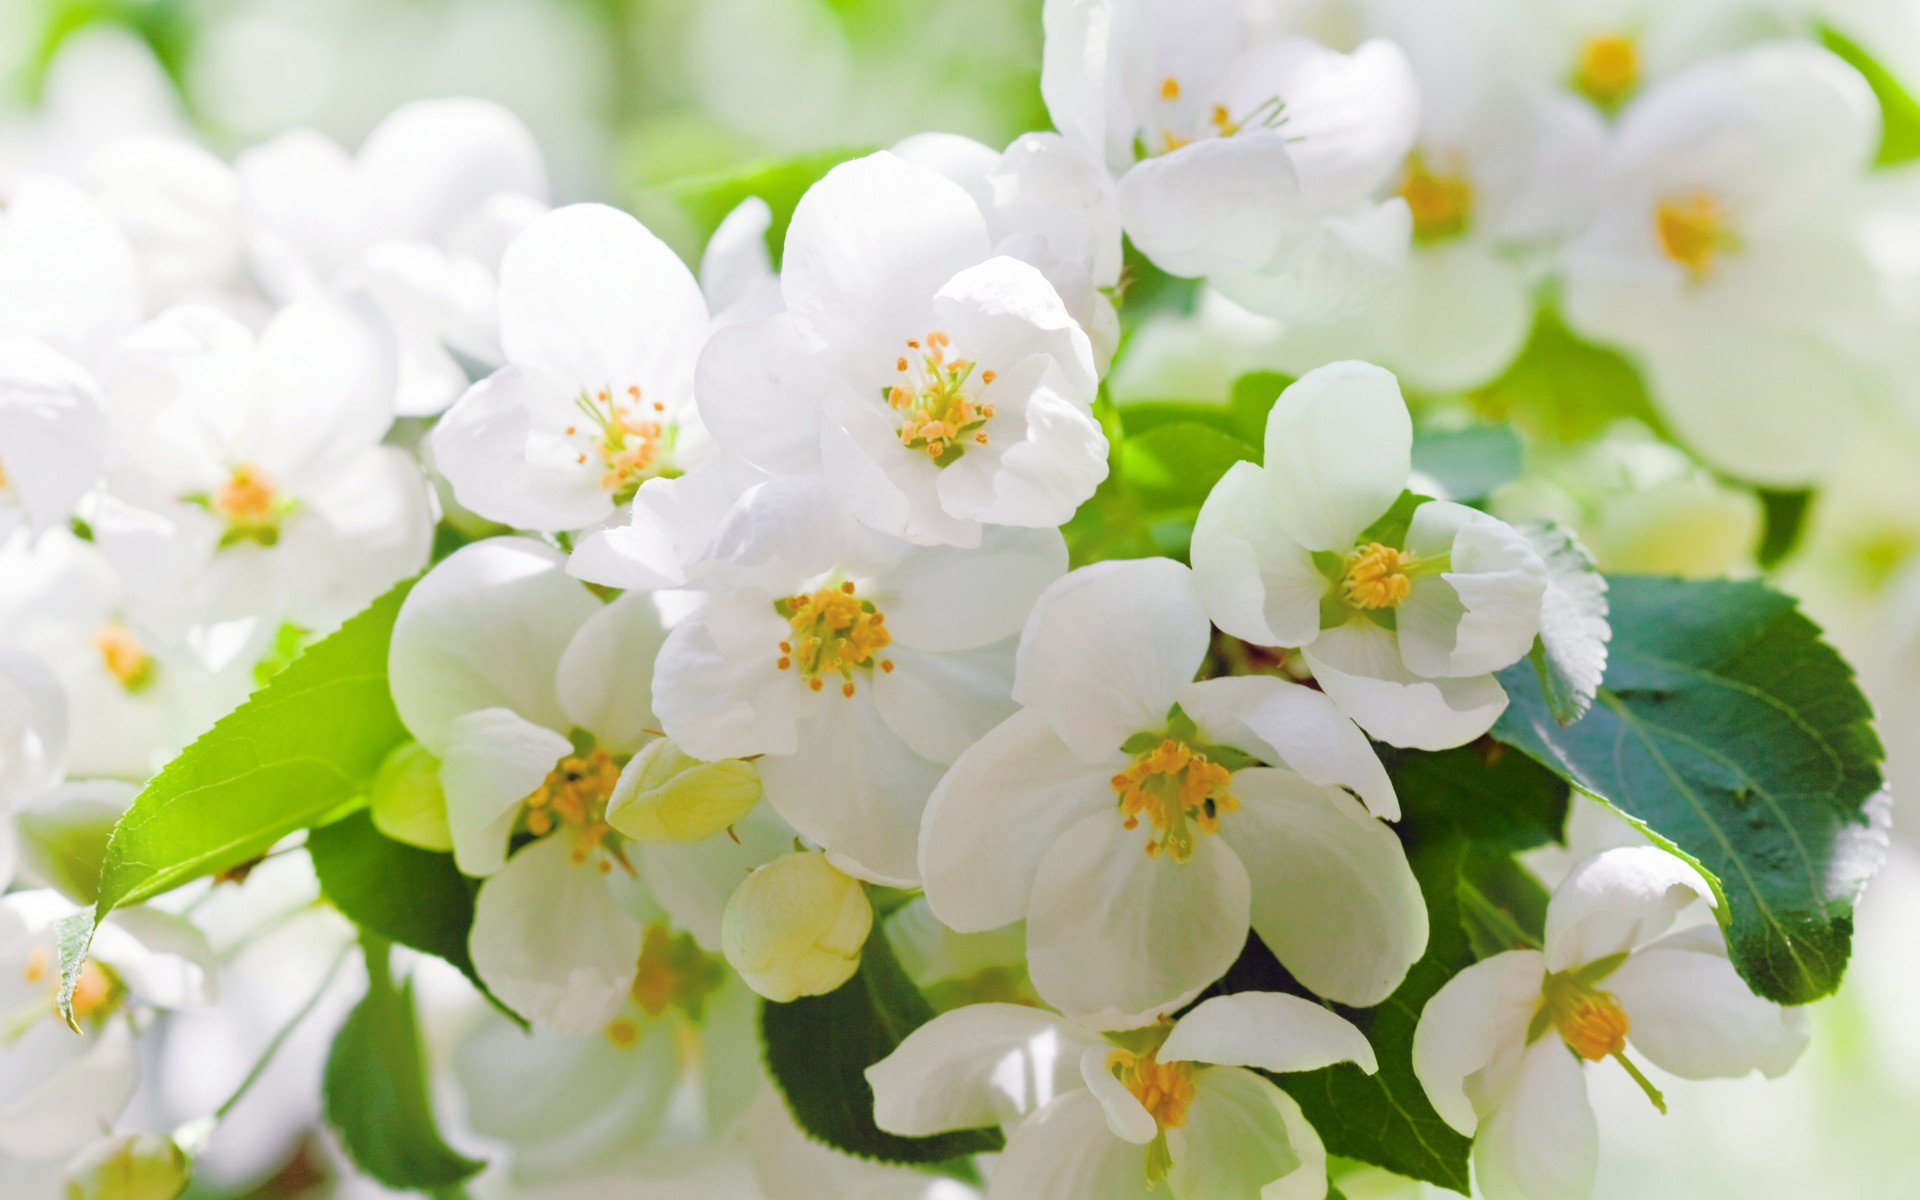 Cherry blossoms flowers white petals leaves branches trees spring wallpaper